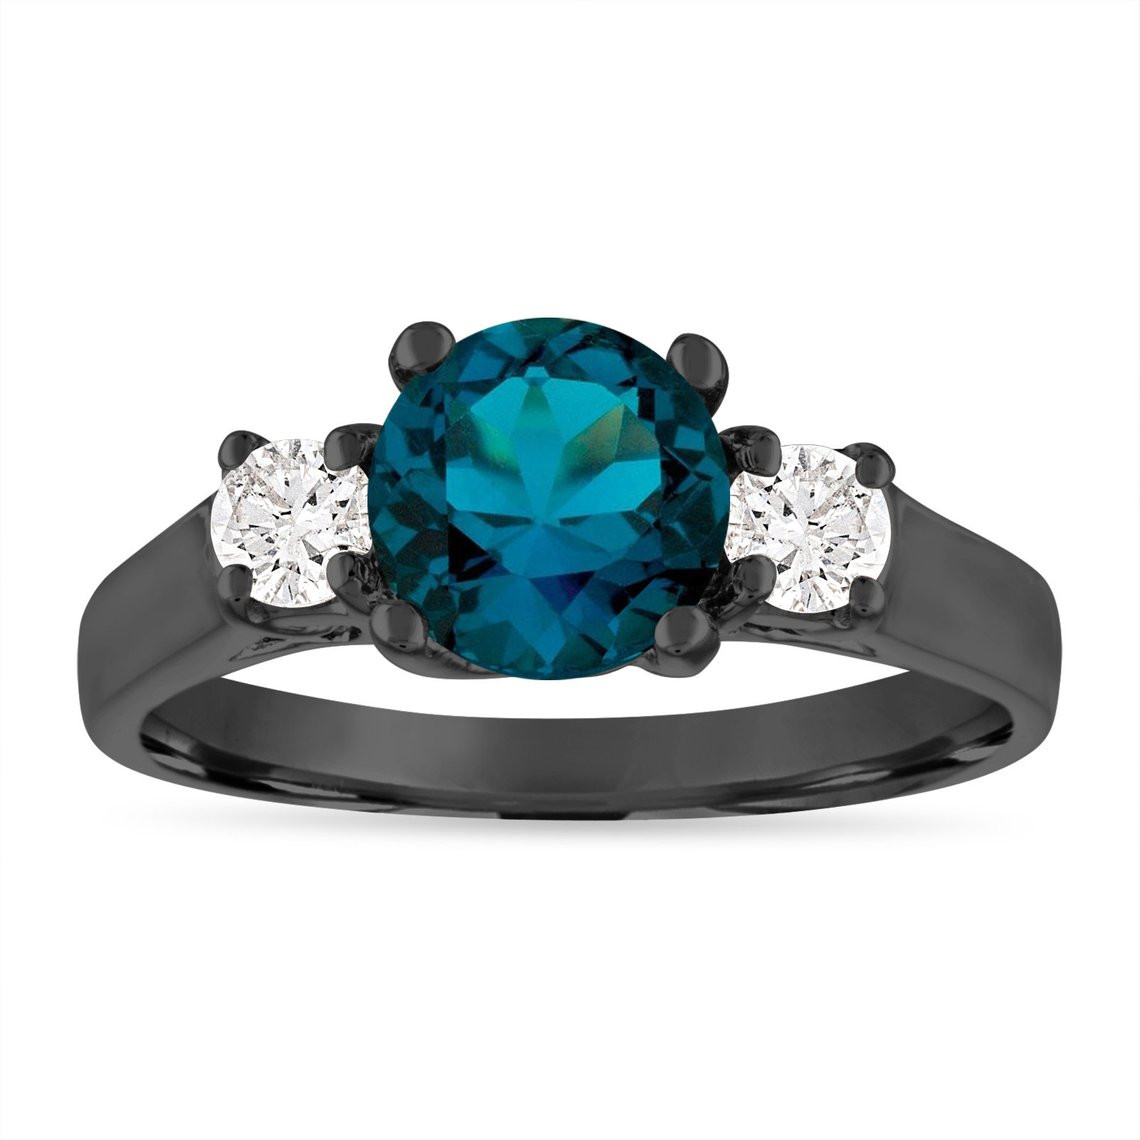 1.37 Ct Blue Topaz And Diamonds Ring 14k White Gold Natural With Latest Technology Fine Jewelry Jewelry & Watches